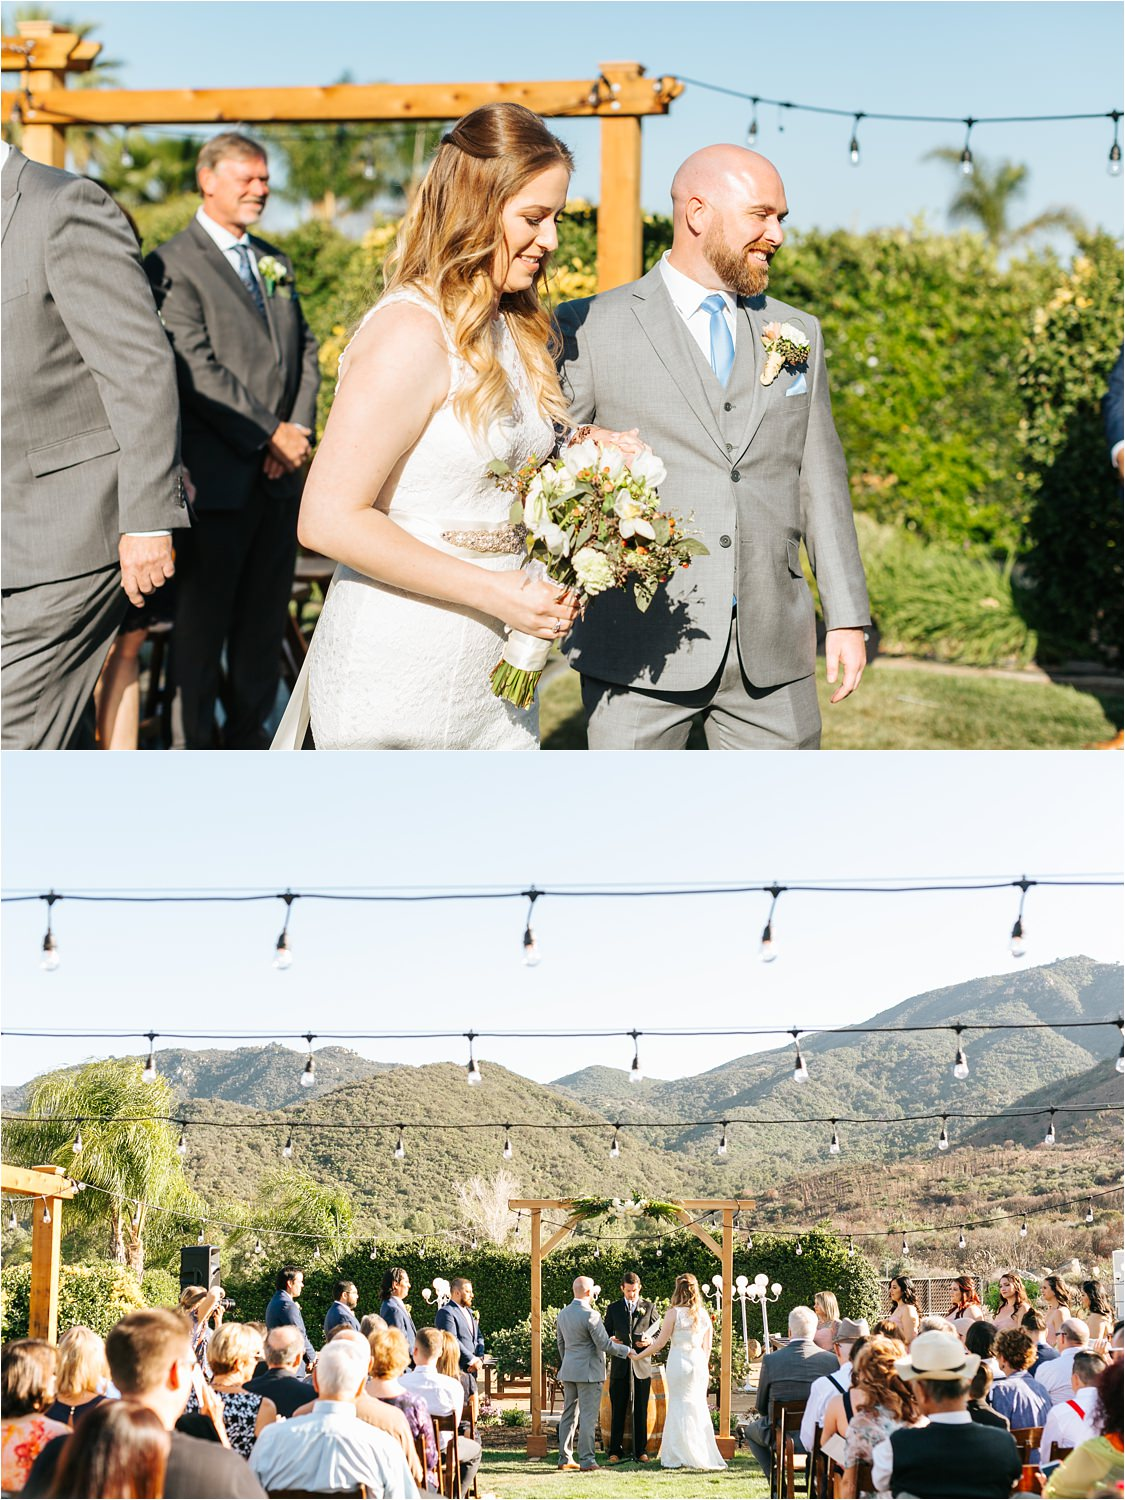 Southern California Wedding Ceremony - Lake Elsinore, CA - https://brittneyhannonphotography.com